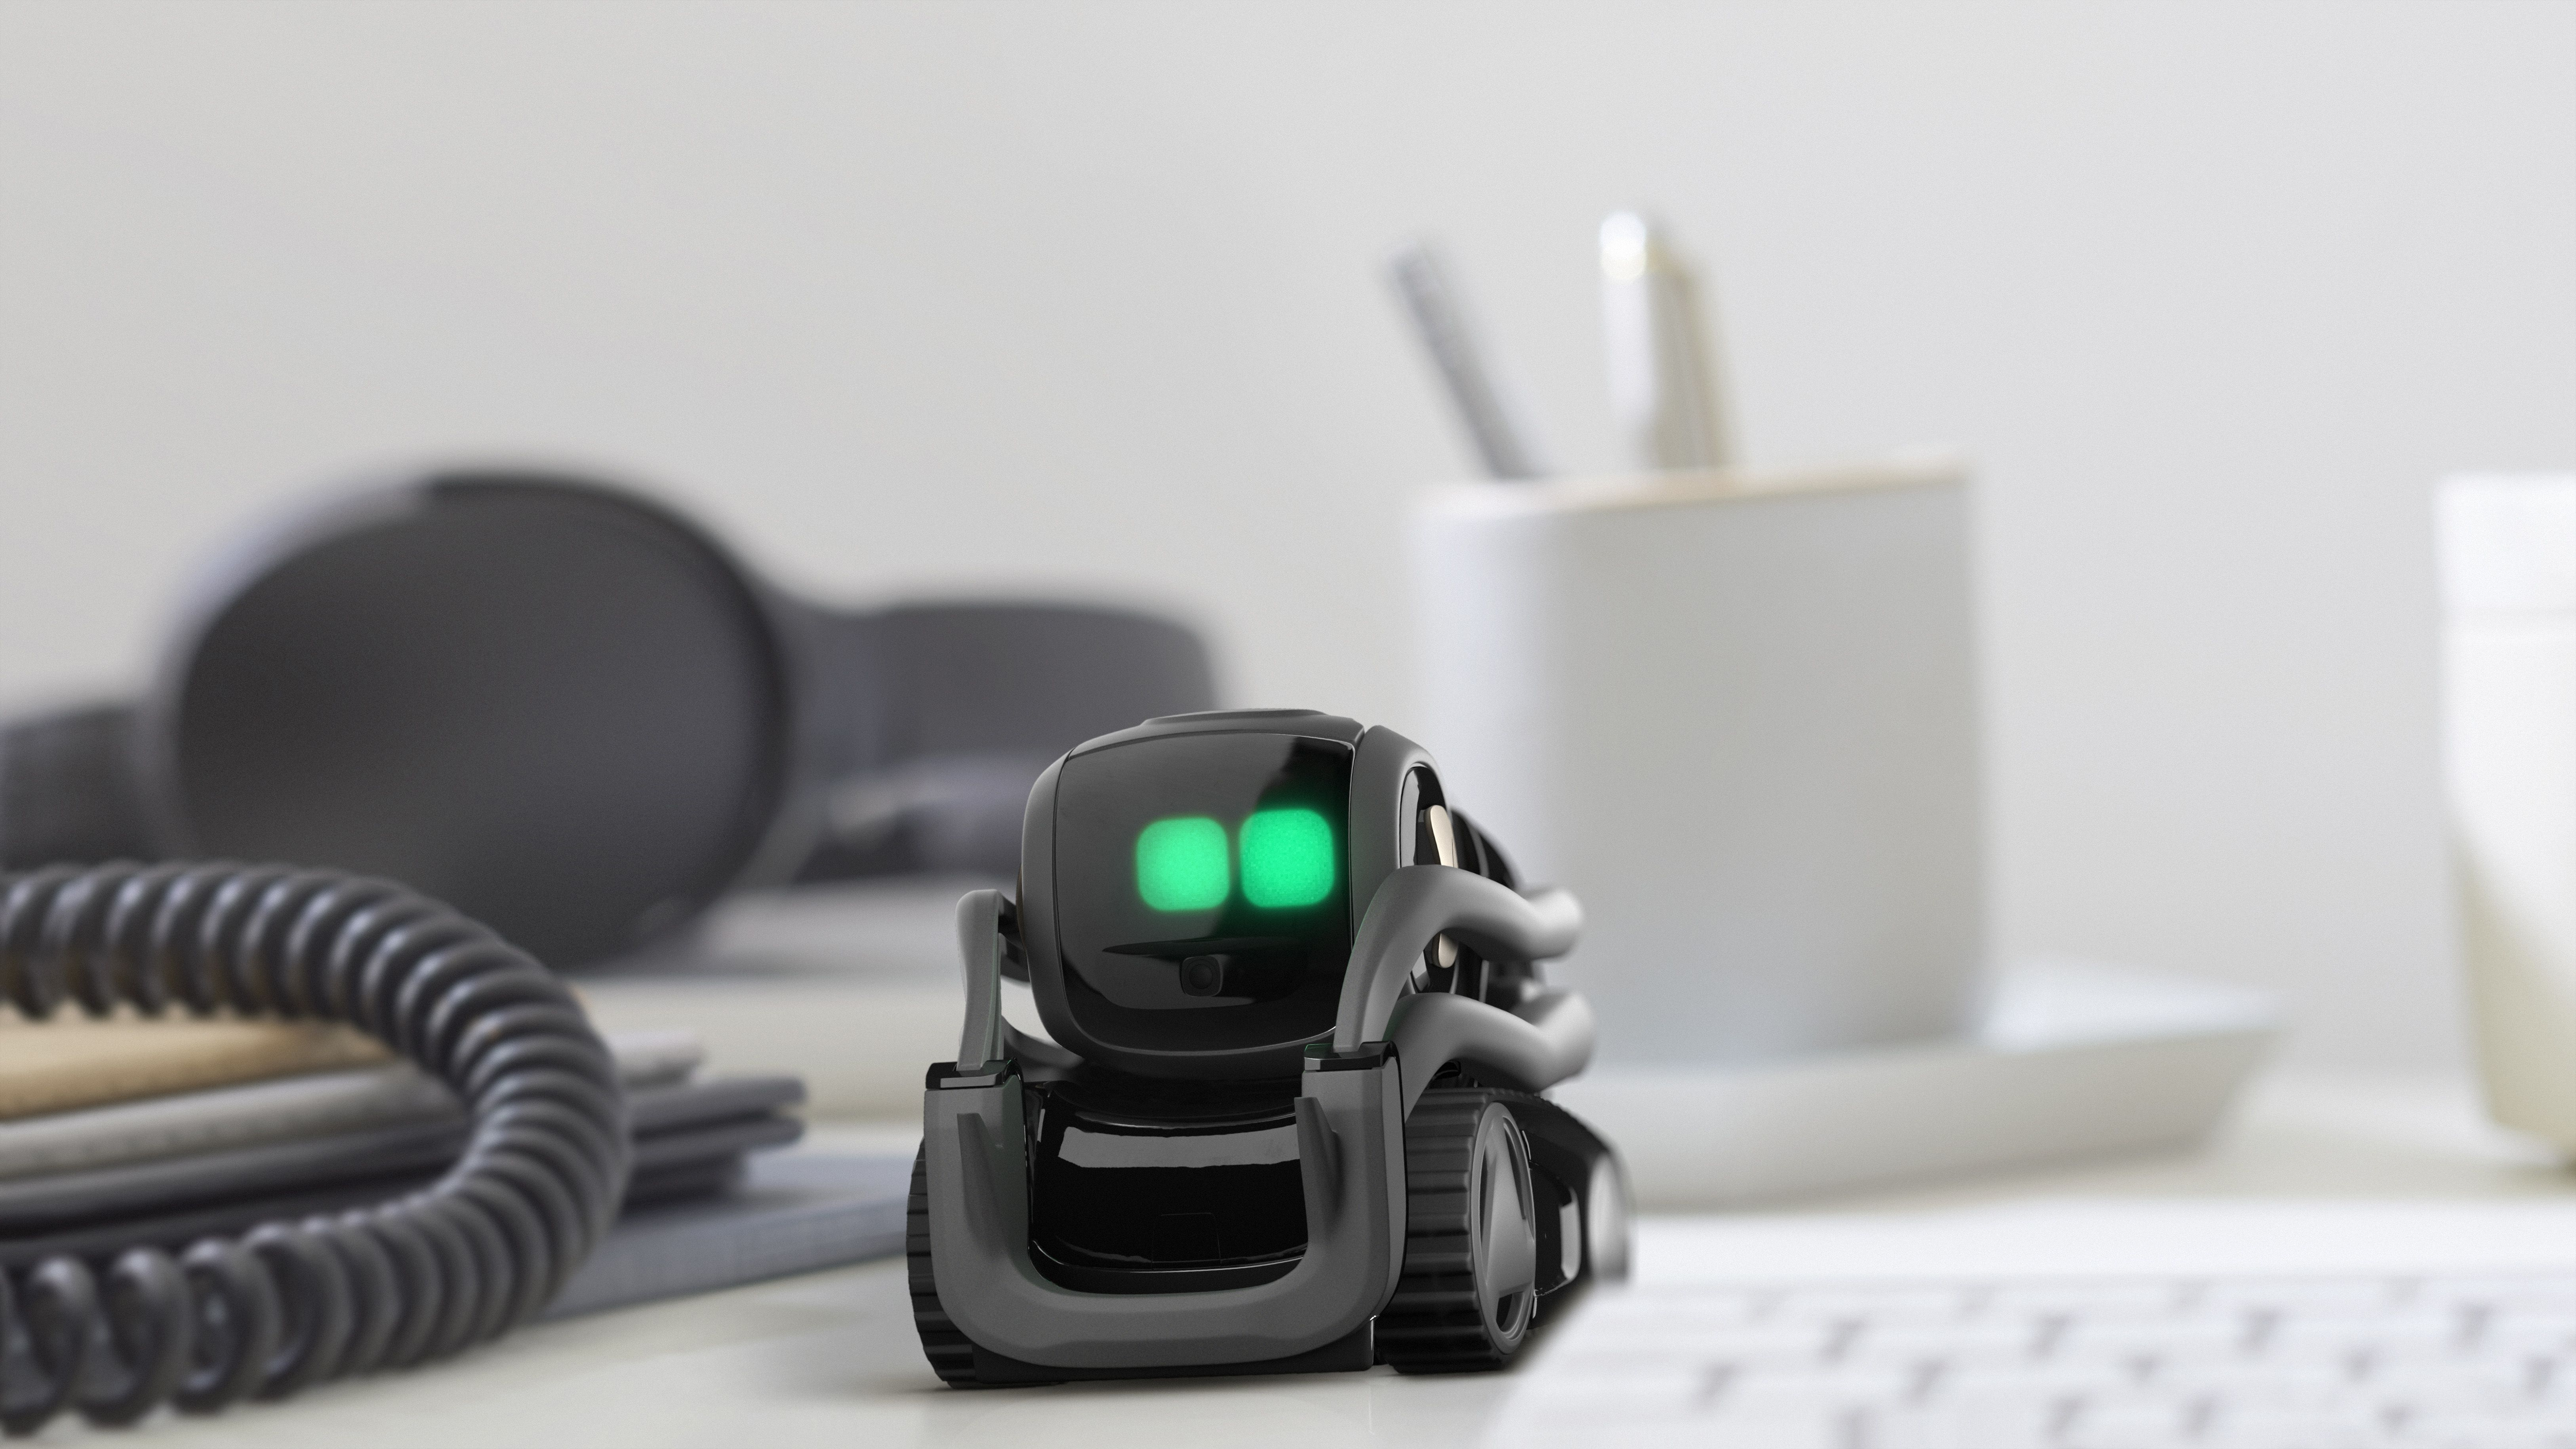 Anki Vector Robot A Helpful Robot Sidekick for Your Home